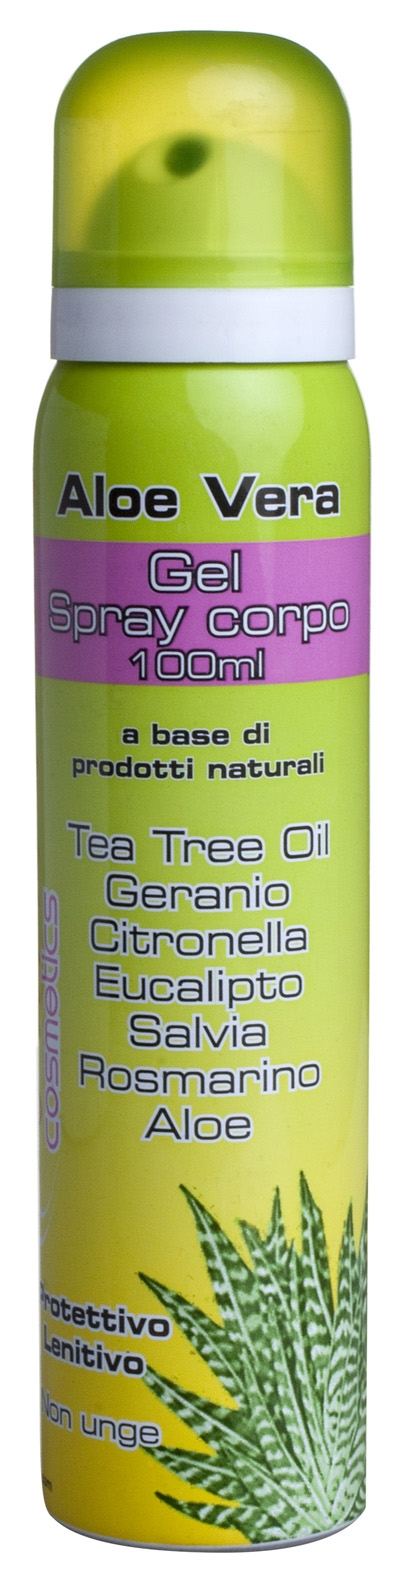 gel spray corpo